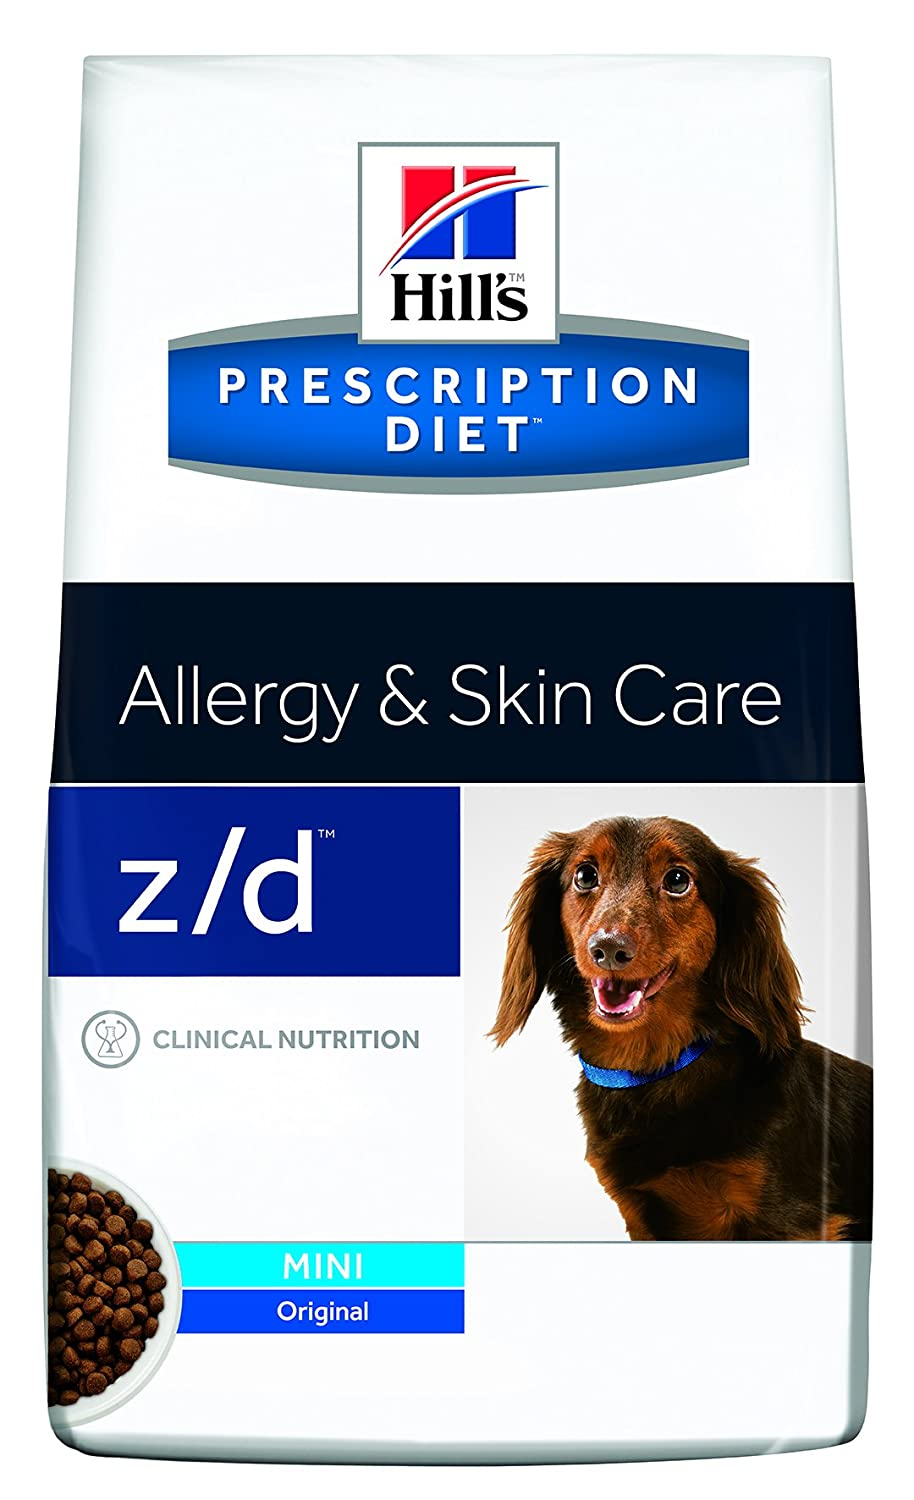 Hills Prescription Diet Perros z/d Mini: Amazon.es: Productos para mascotas